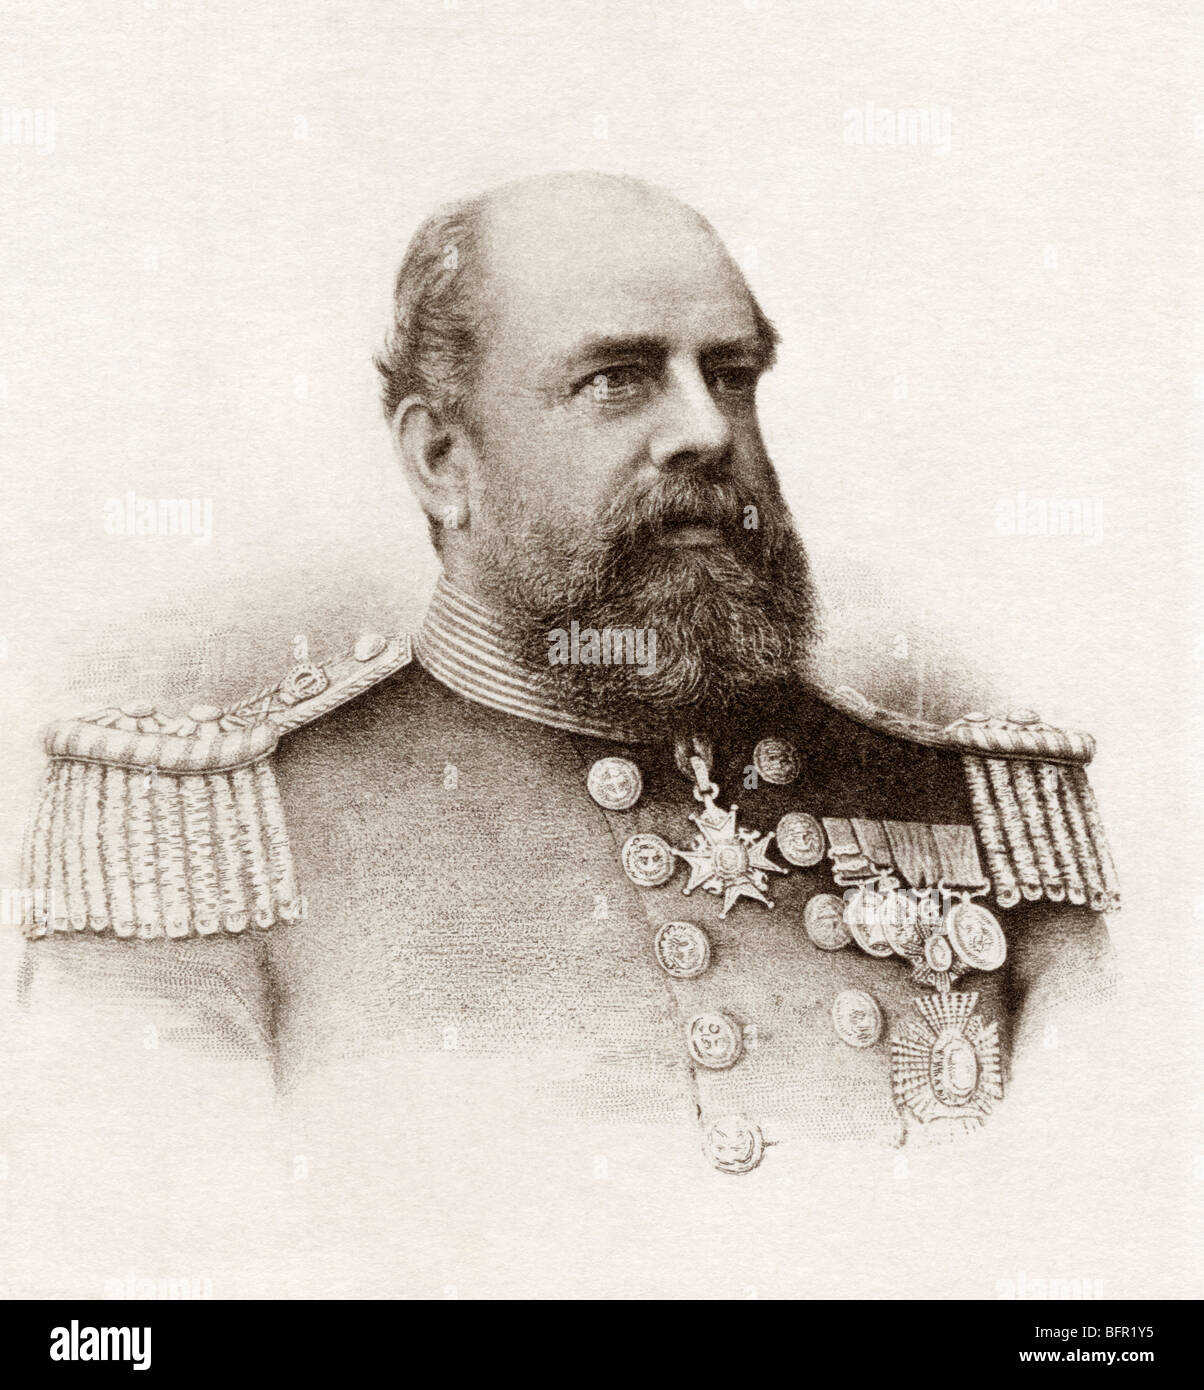 Vice-Admiral Sir George Tryon, 1832 to 1893.  British admiral. - Stock Image